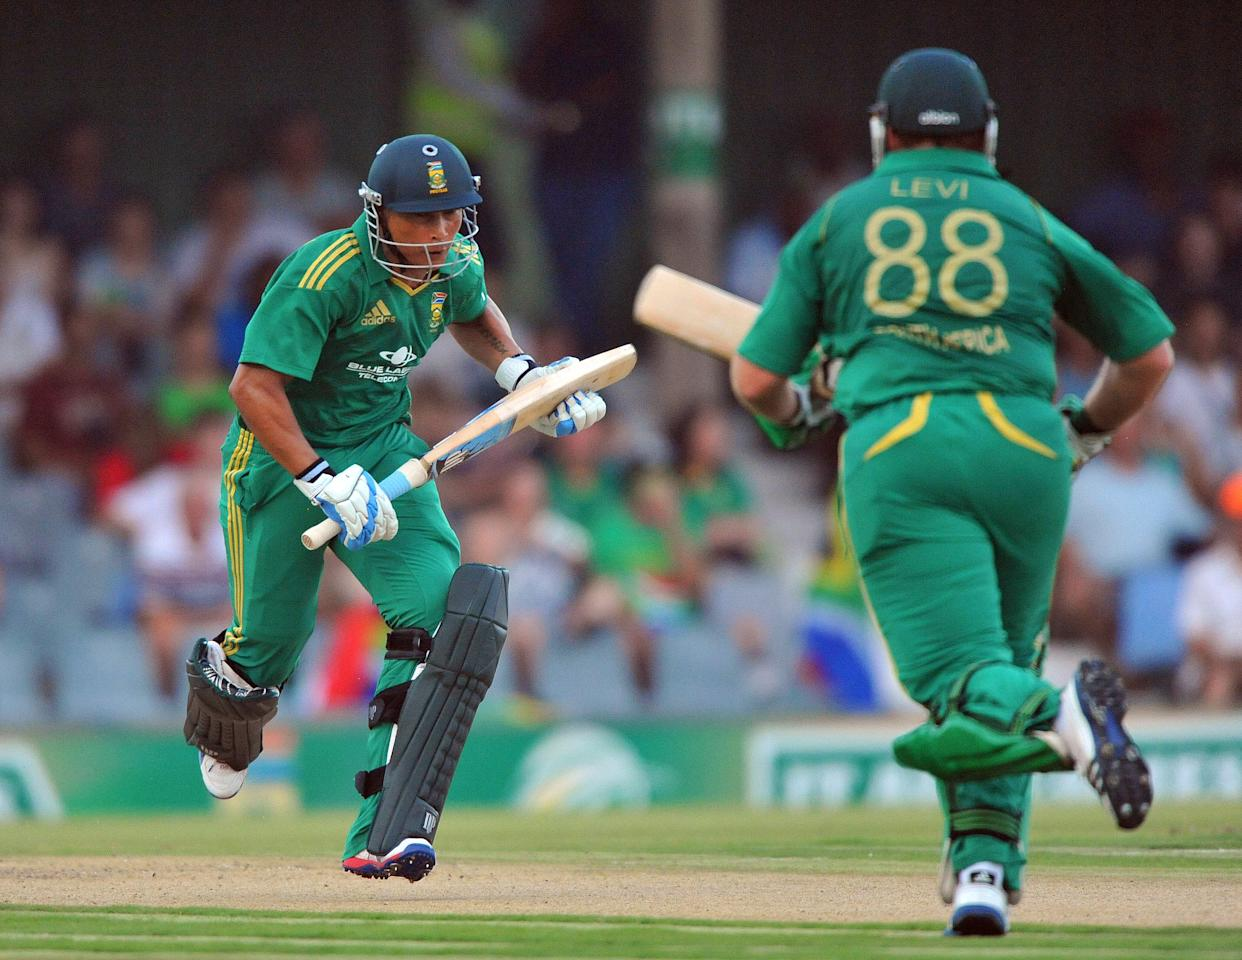 EAST LONDON, SOUTH AFRICA - DECEMBER 23:   Henry Davids of South Africa runs a single during the 2nd T20 match between South Africa and New Zealand at Buffalo Park on December 23, 2012 in East London, South Africa.  (Photo by Duif du Toit/Gallo Images/Getty Images)